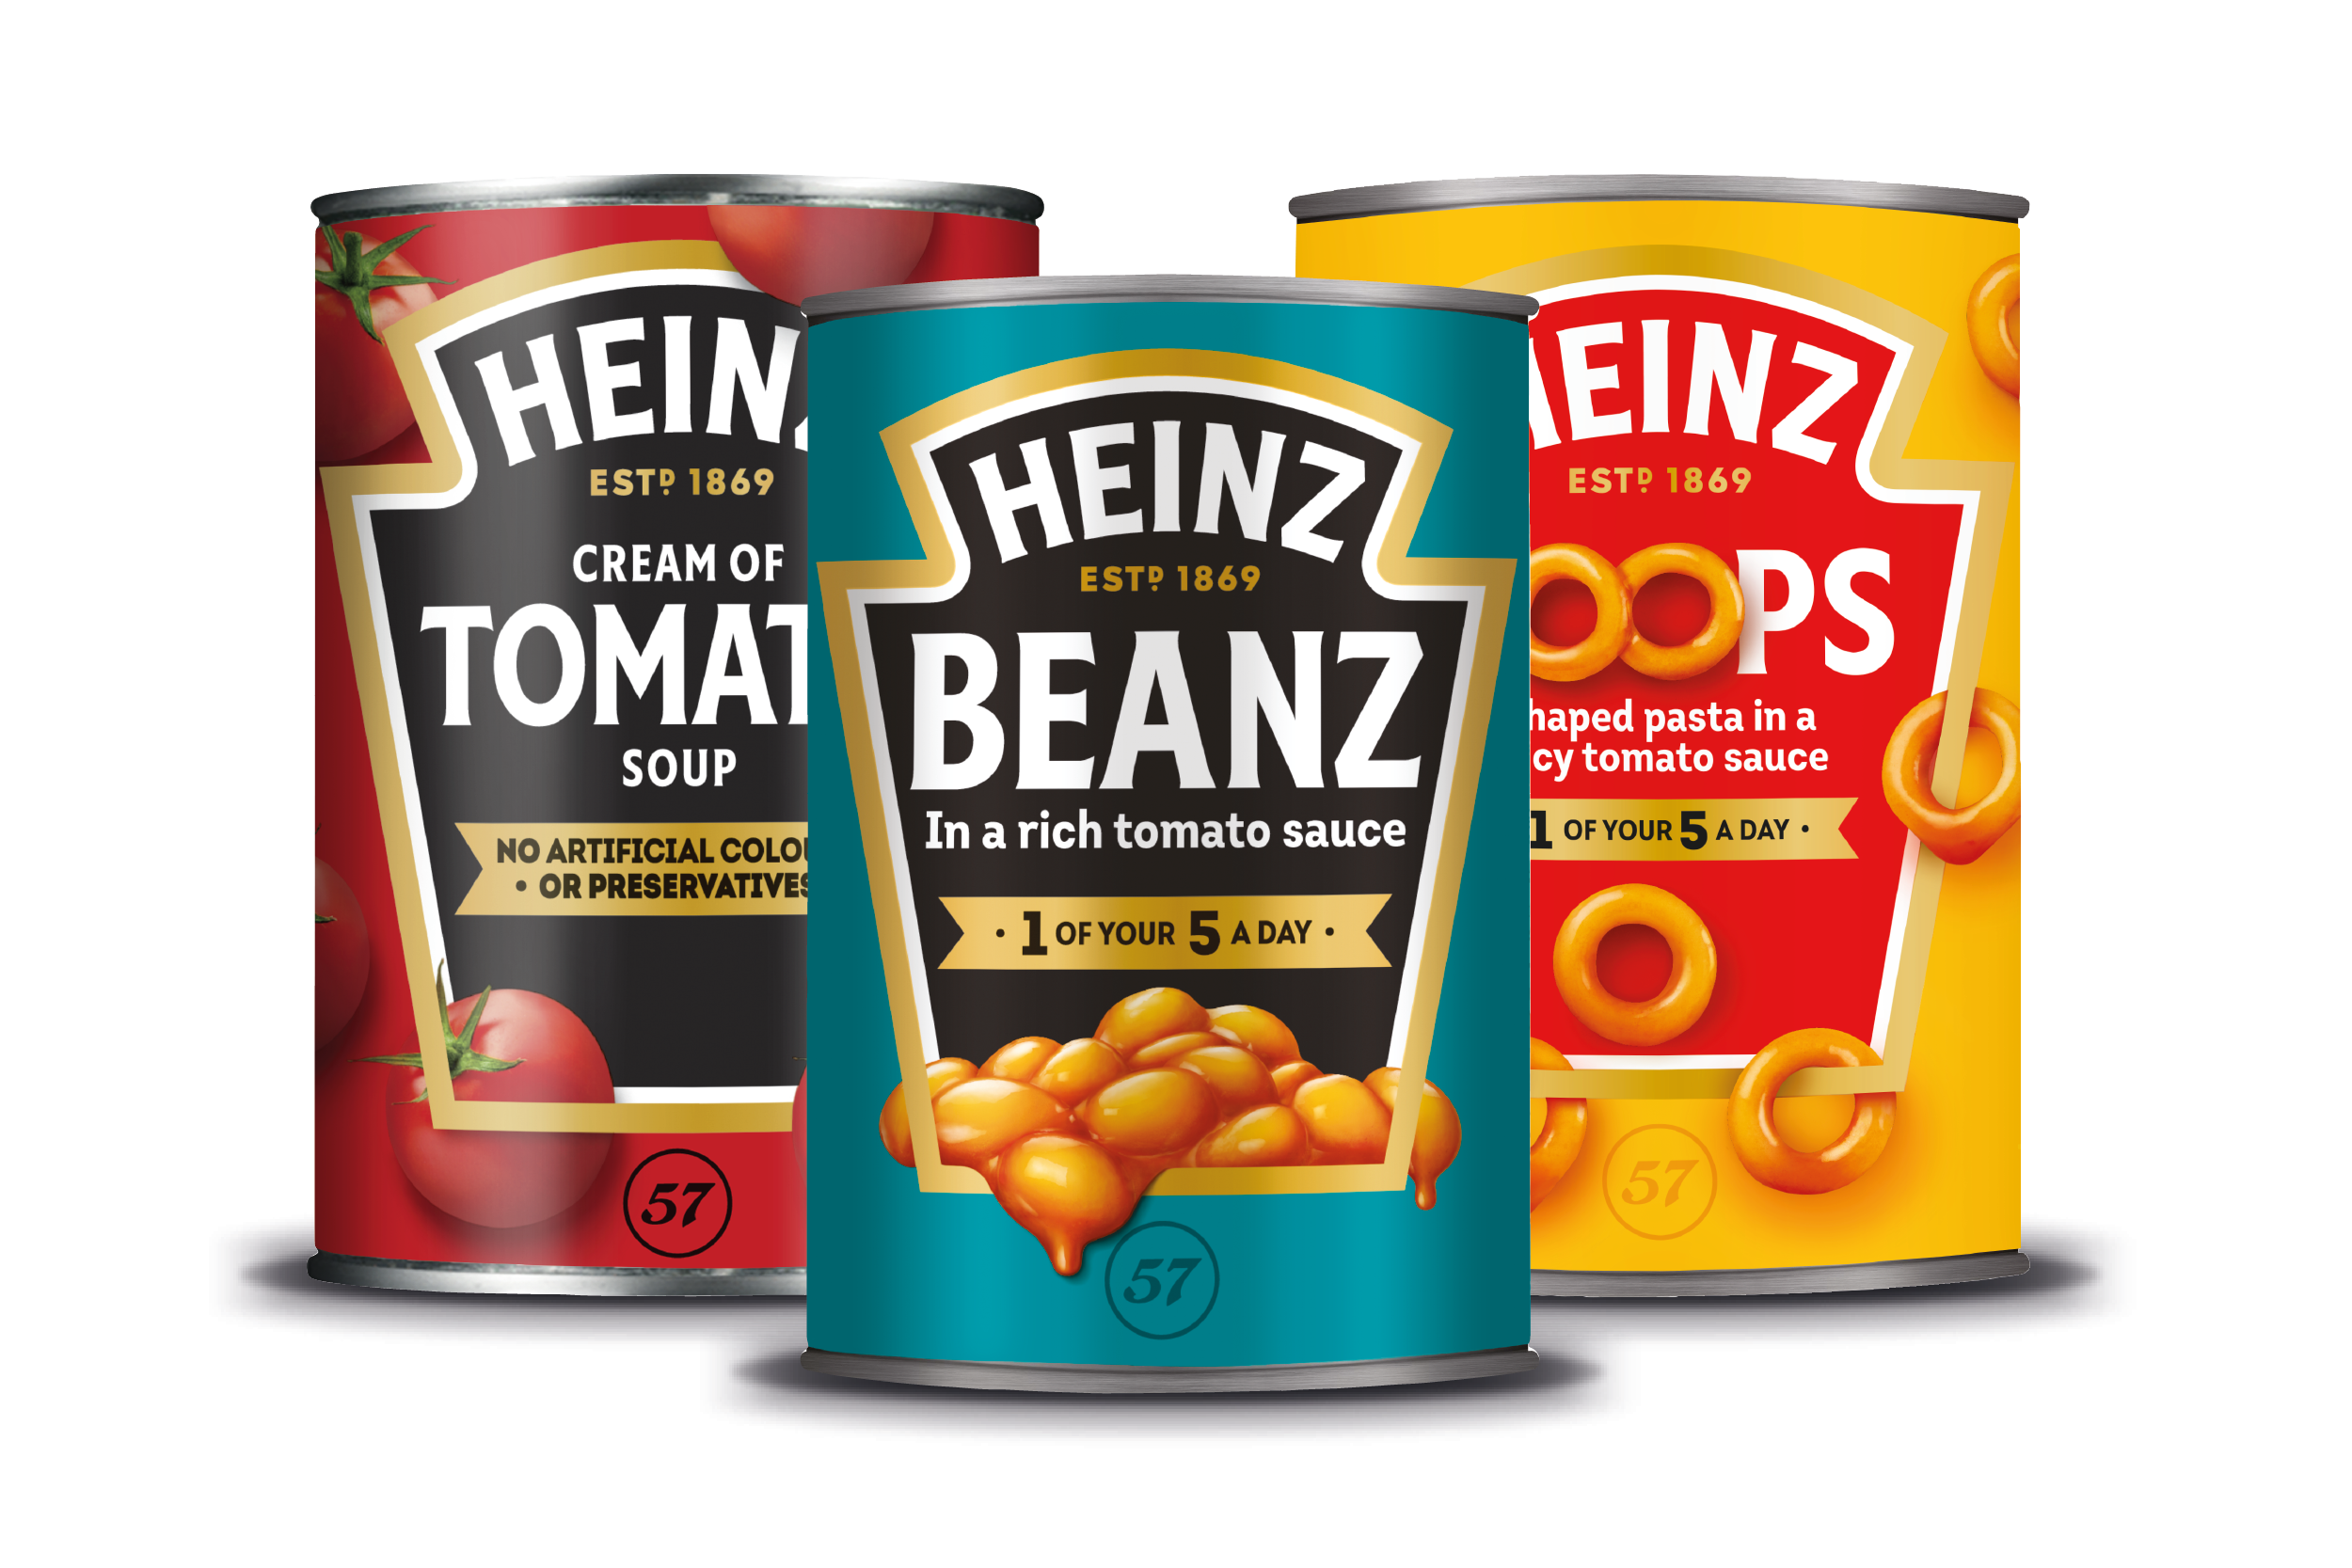 Heinz 'Cans' Plastic Packaging